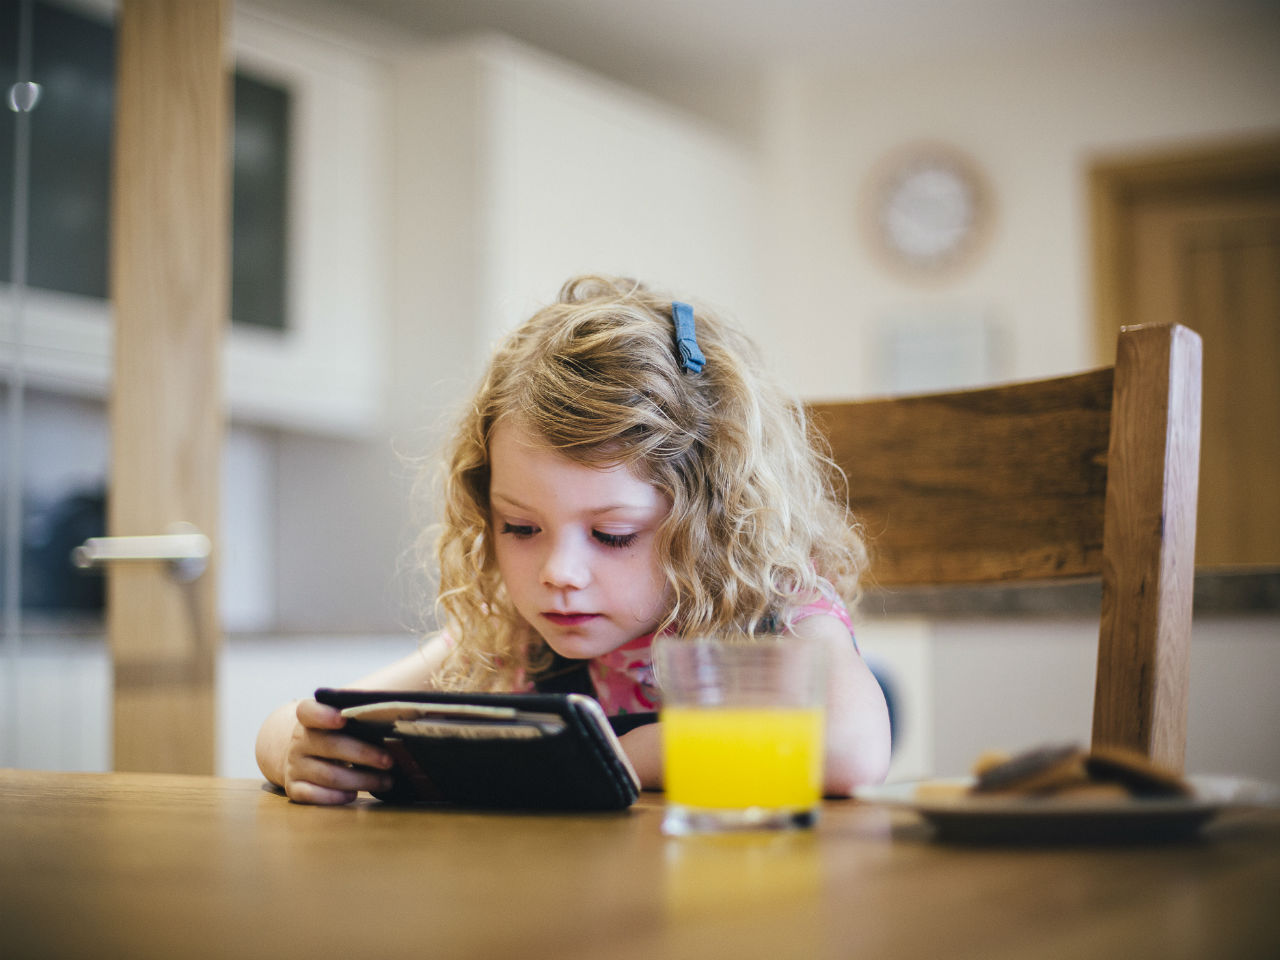 Little girl looking at an iPad